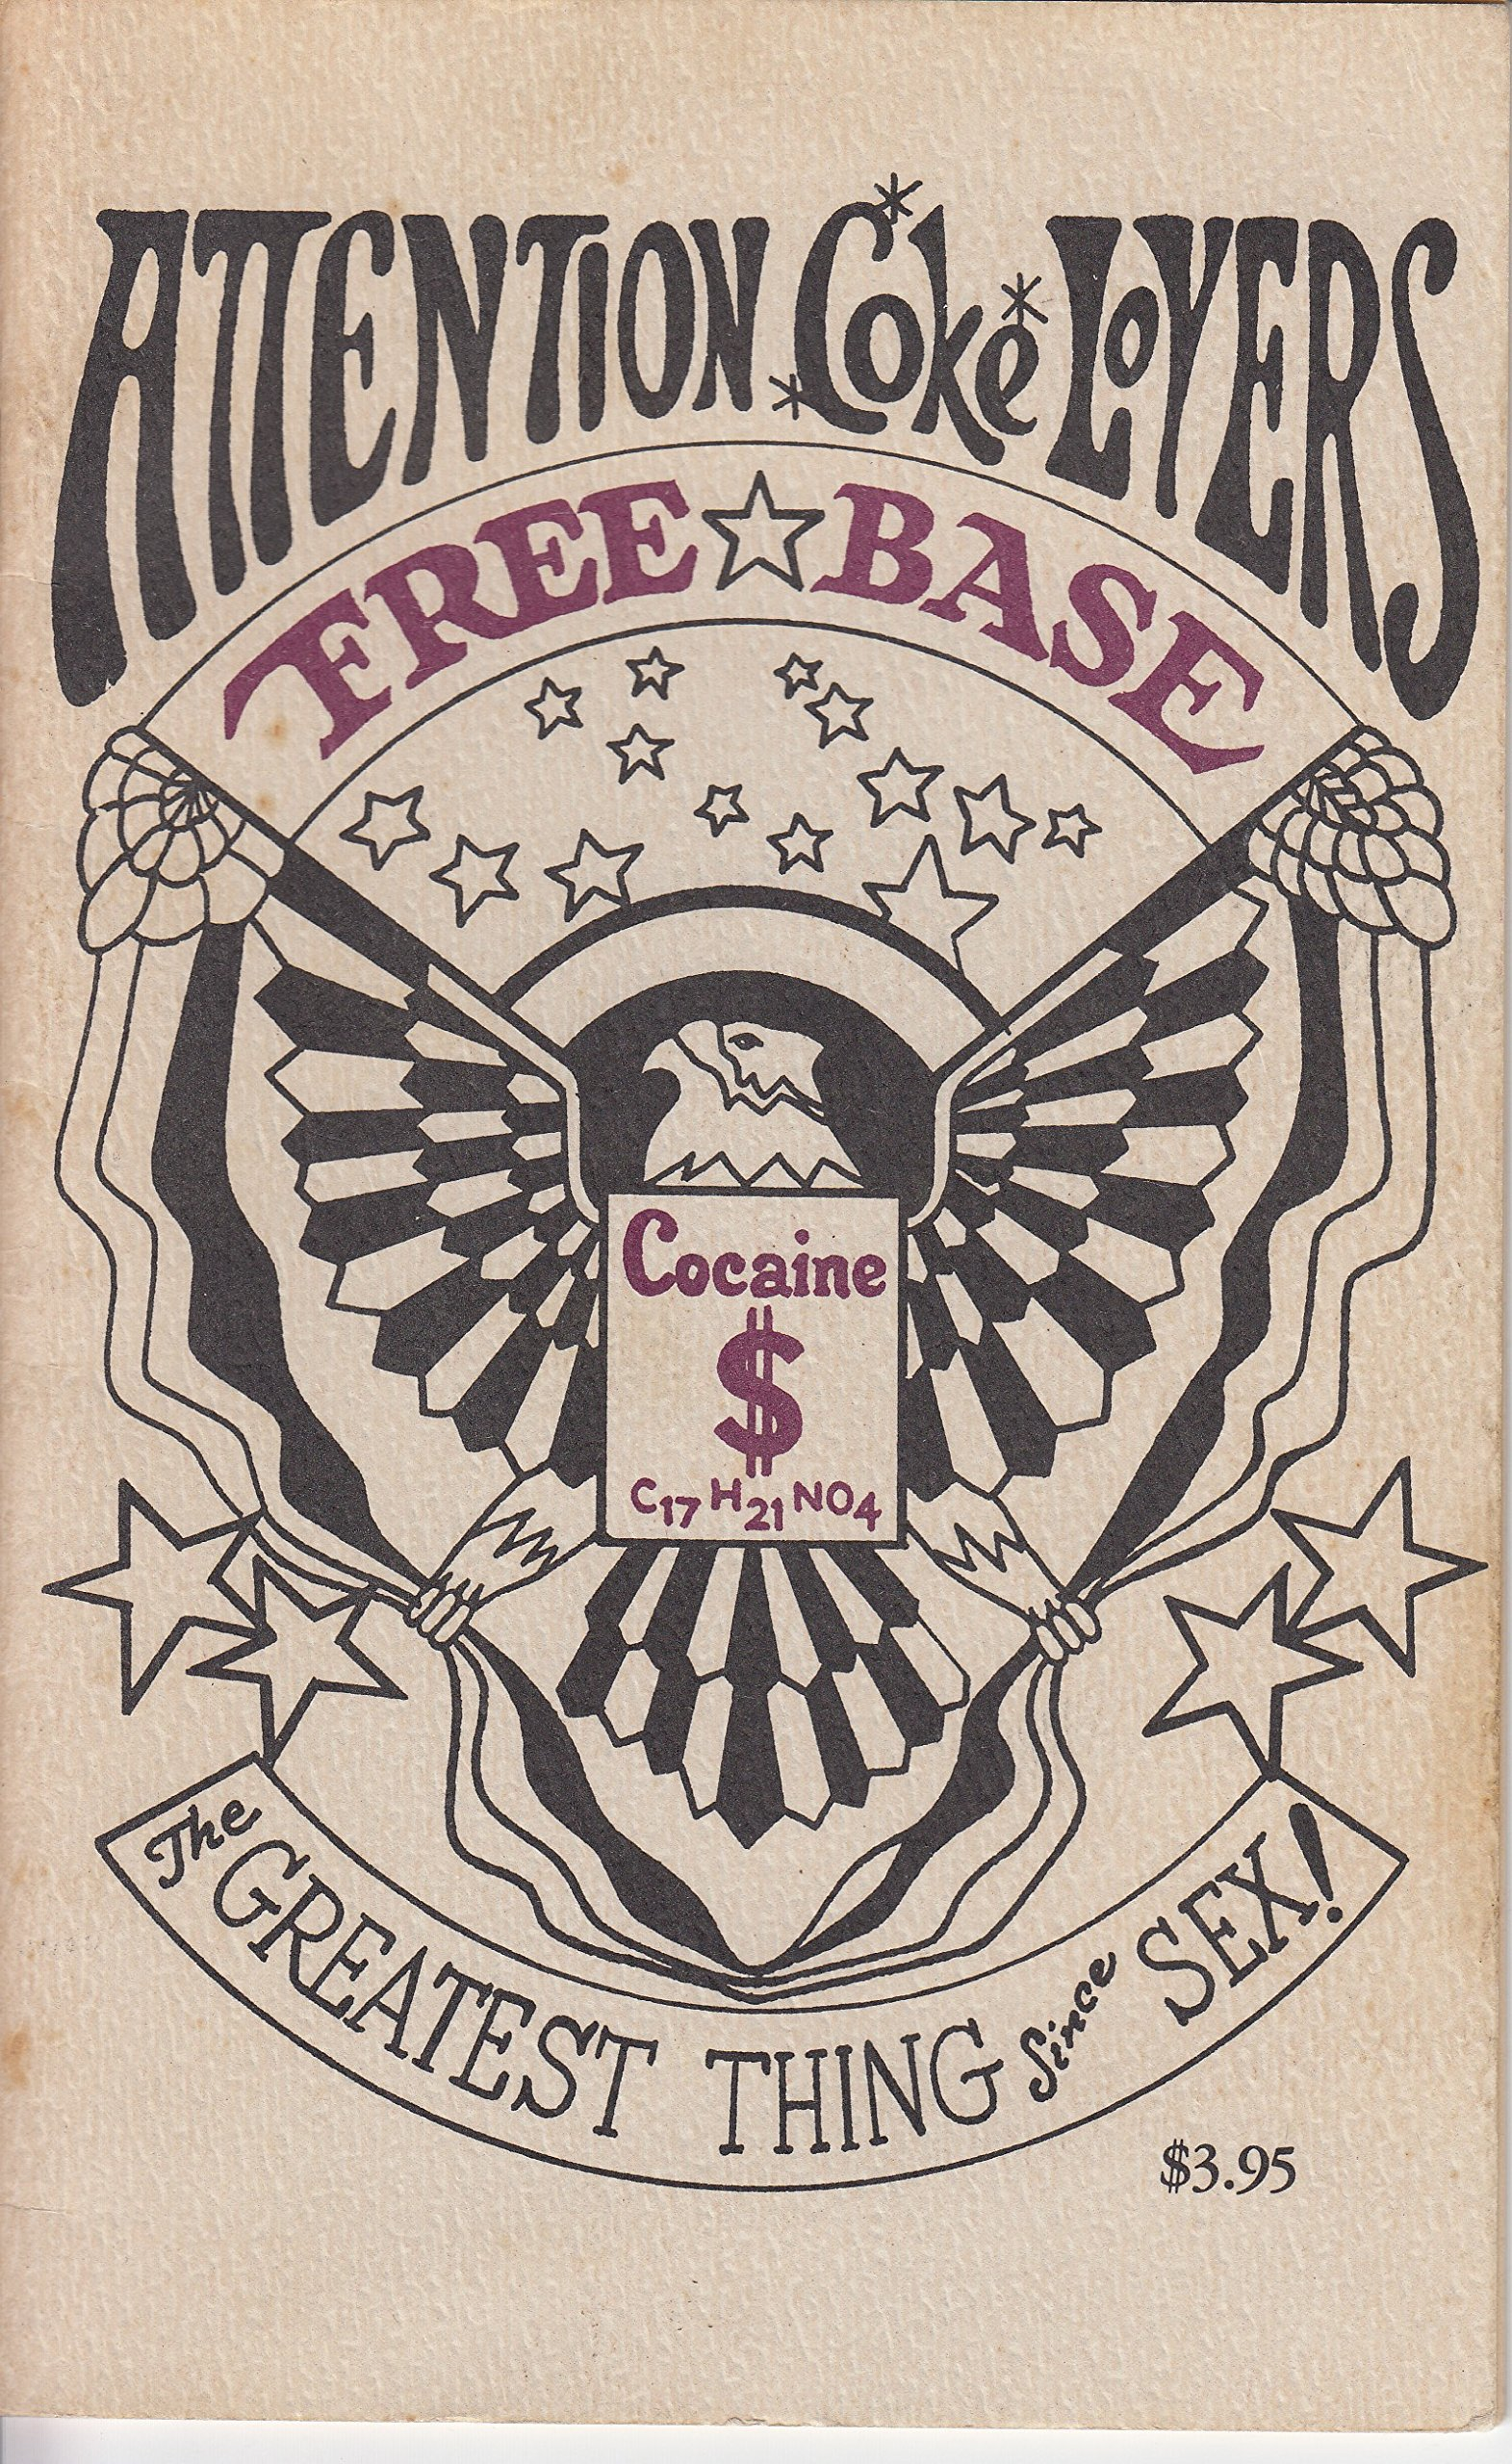 Everything you'll ever need to know about freebase cocaine: The greatest thing since sex, Anvil, J. M